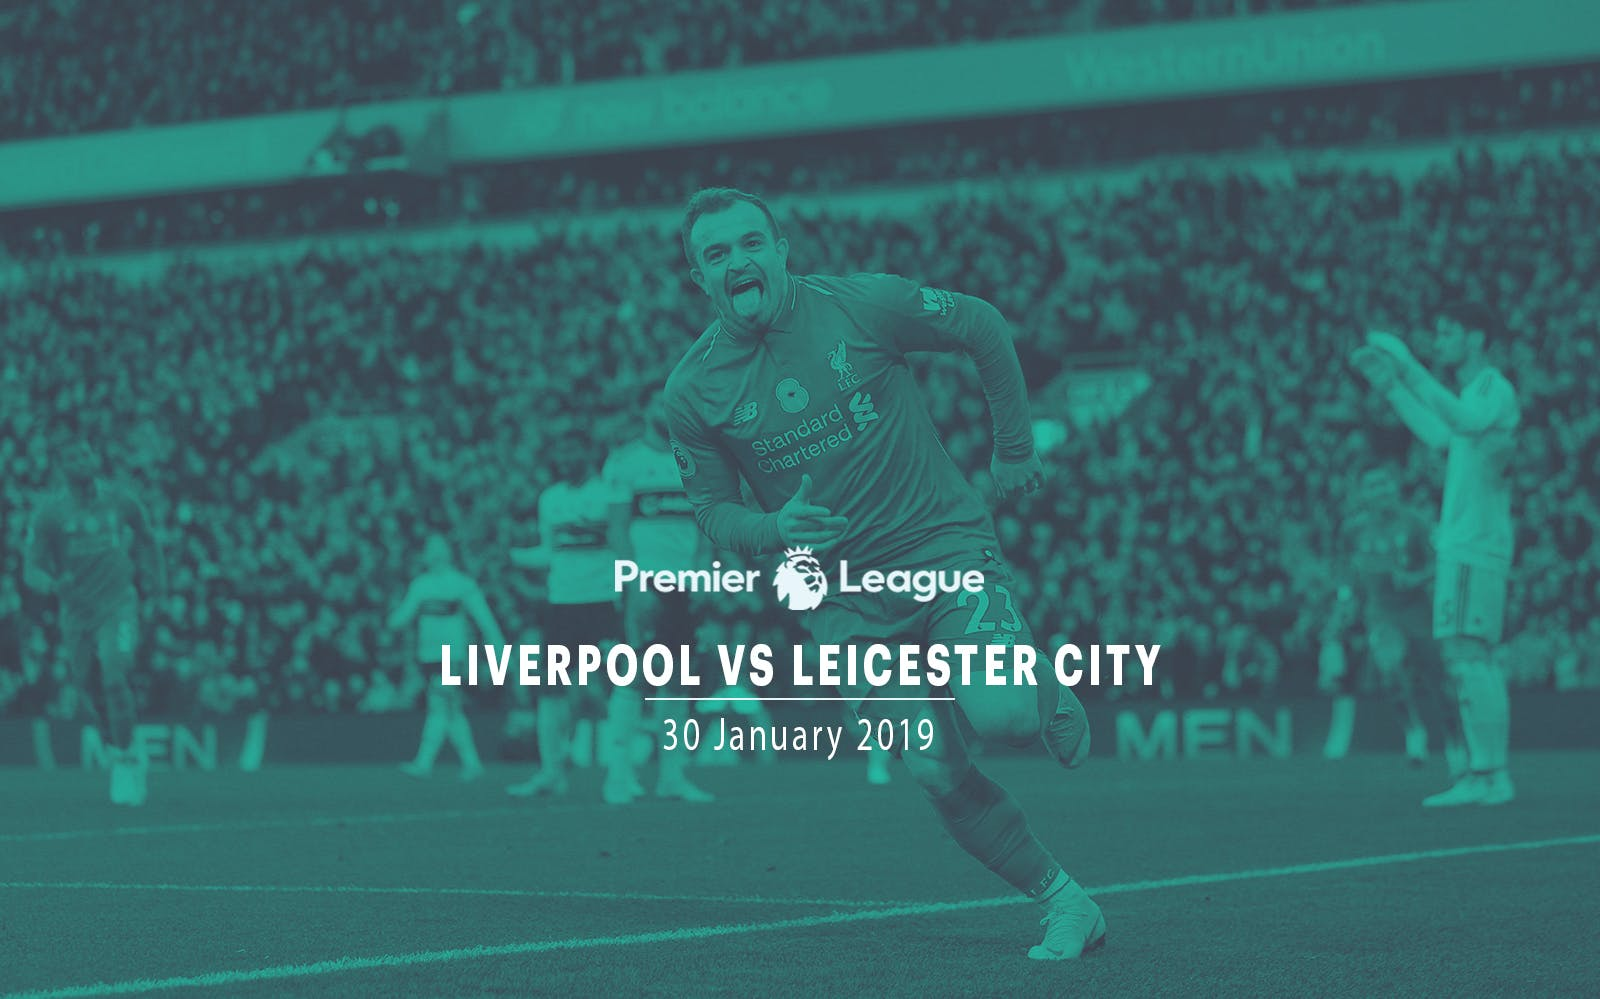 Liverpool vs Leicester City - 30th Jan '19